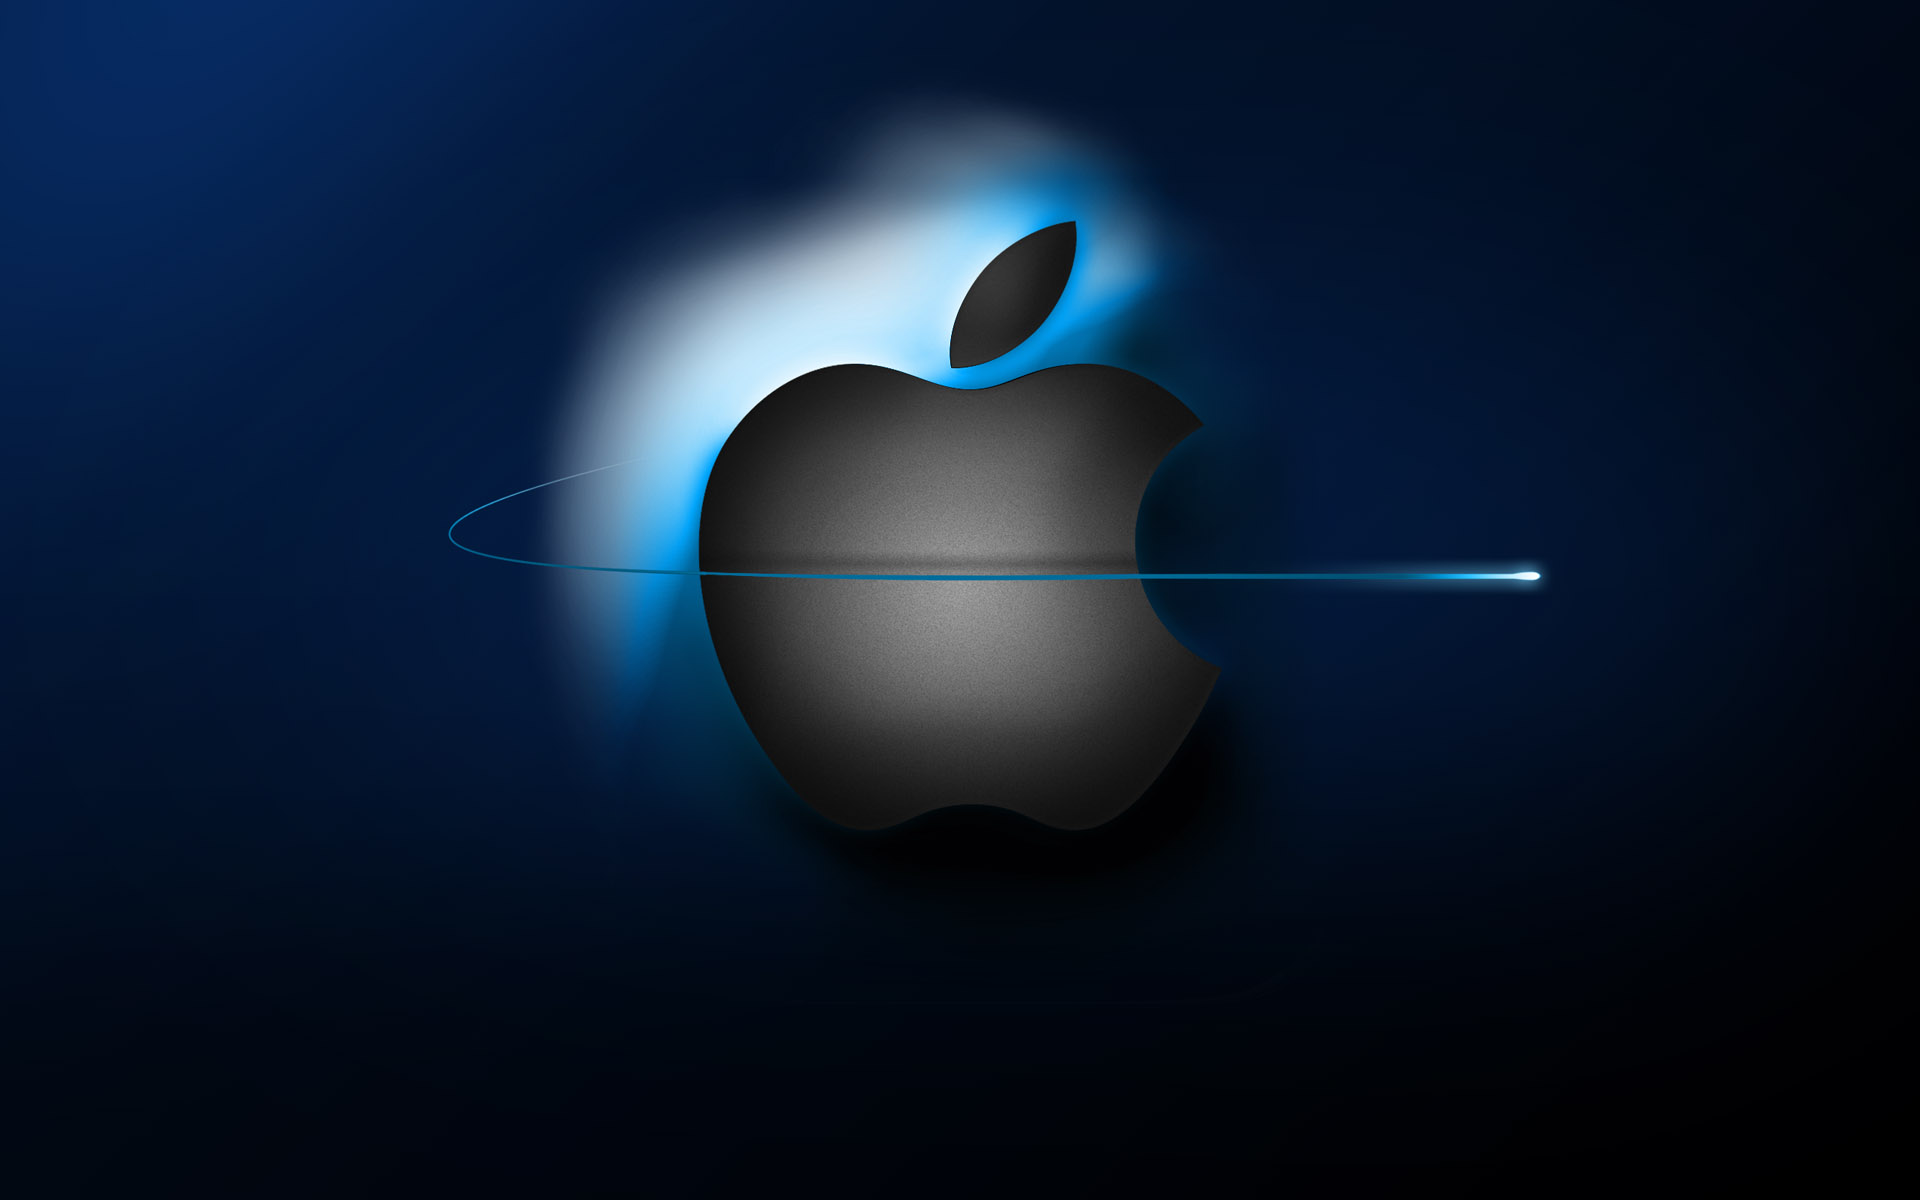 HD Apple wallpaper 20445